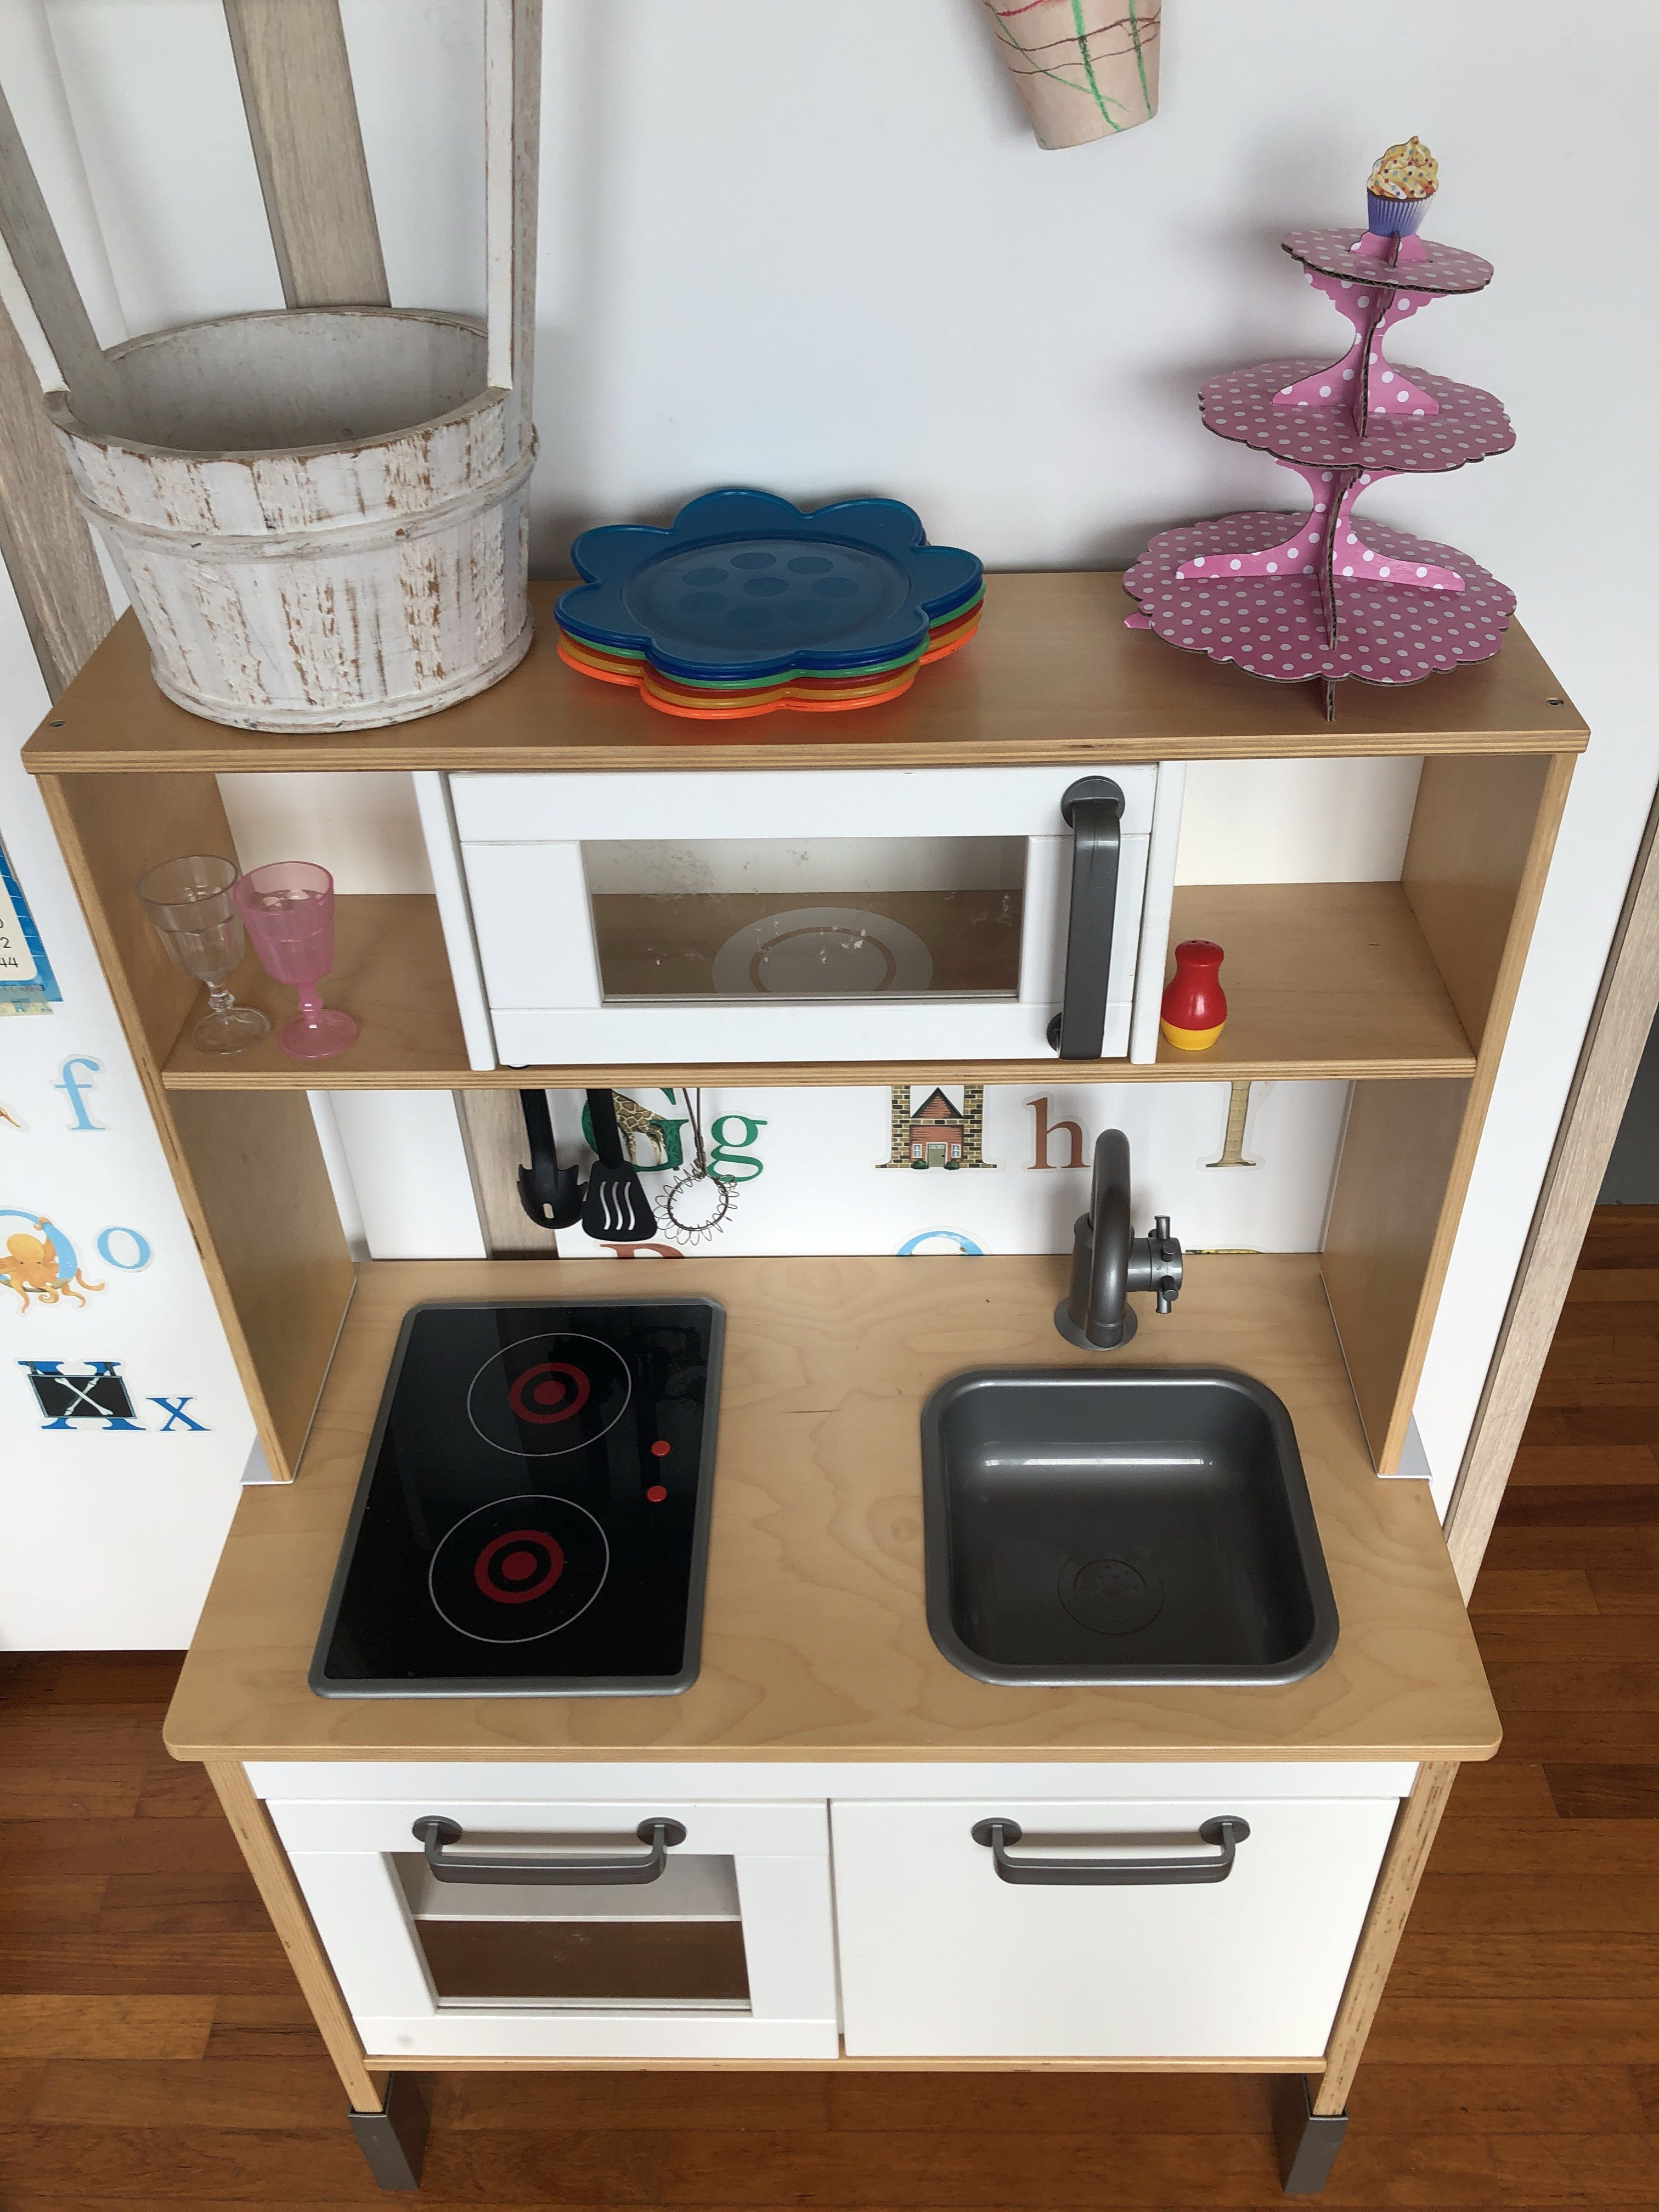 Ikea Toy Kitchen For Sale Shop Clothing Shoes Online